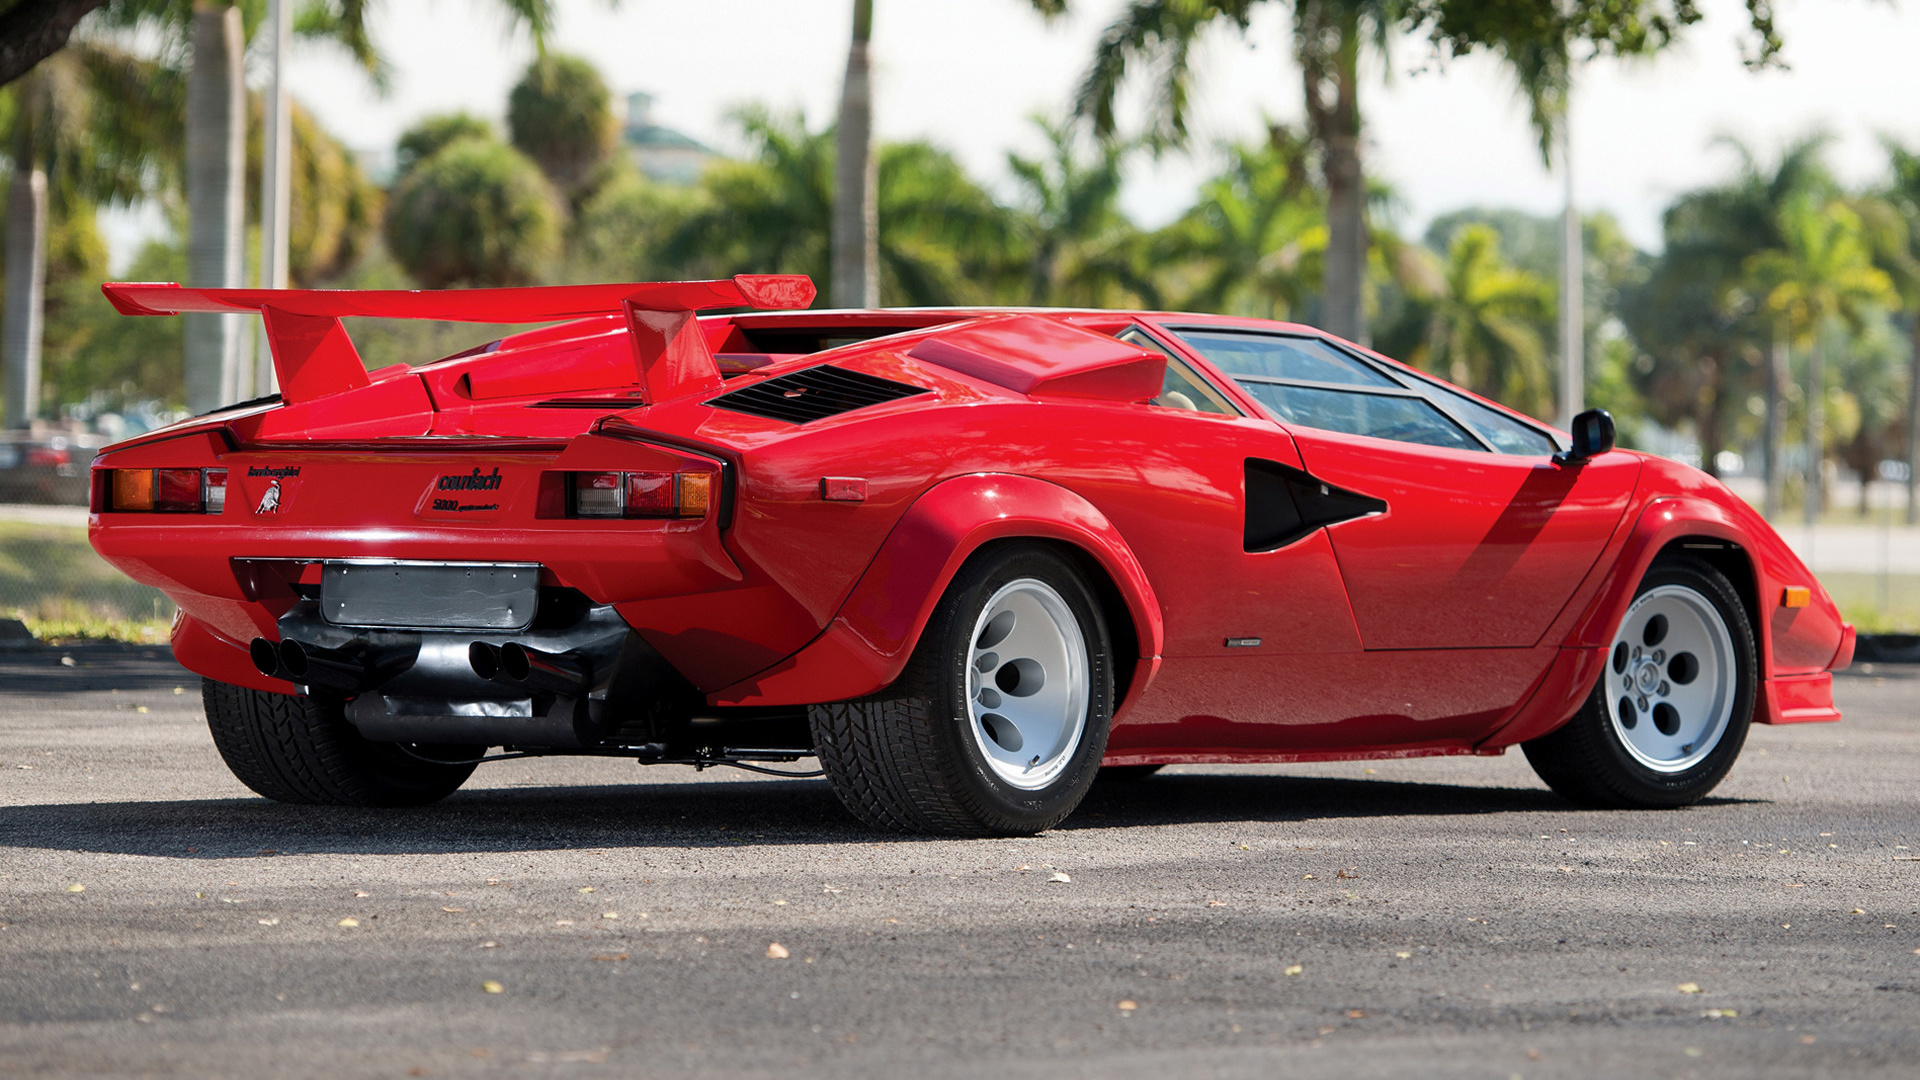 lamborghini countach 5000 quattrovalvole 1985 us wallpapers and hd images. Black Bedroom Furniture Sets. Home Design Ideas